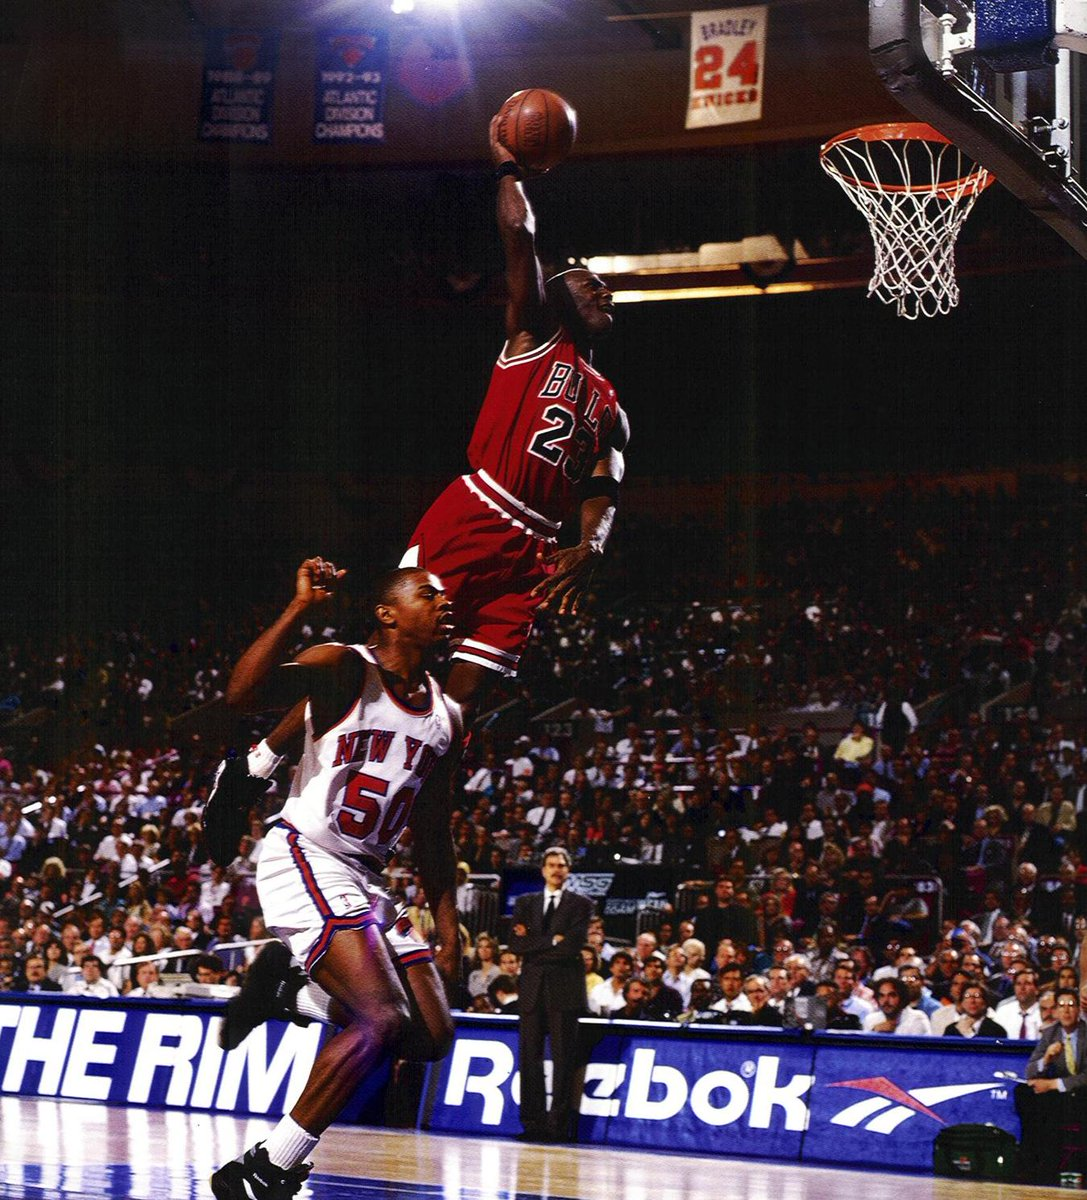 Jordan actually missed that dunk. RT @Tri_Offense: #MJMondays Sorry @GregAnthony50. Must see this one a lot, huh? http://t.co/PCwNVpJd9y